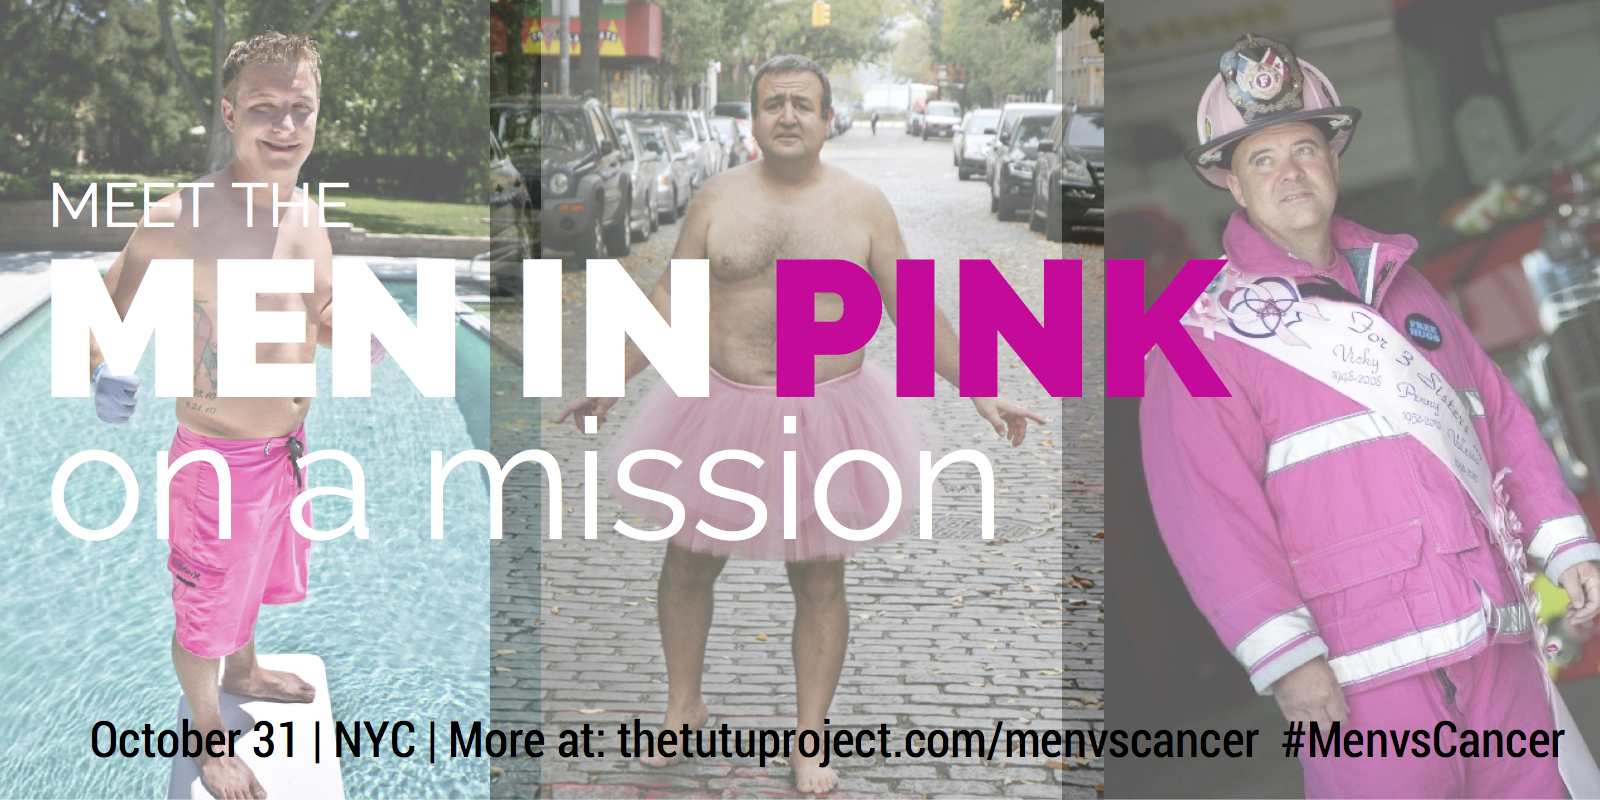 Meet the Breast Cancer Non-Profits Behind the Unity in Pink Event